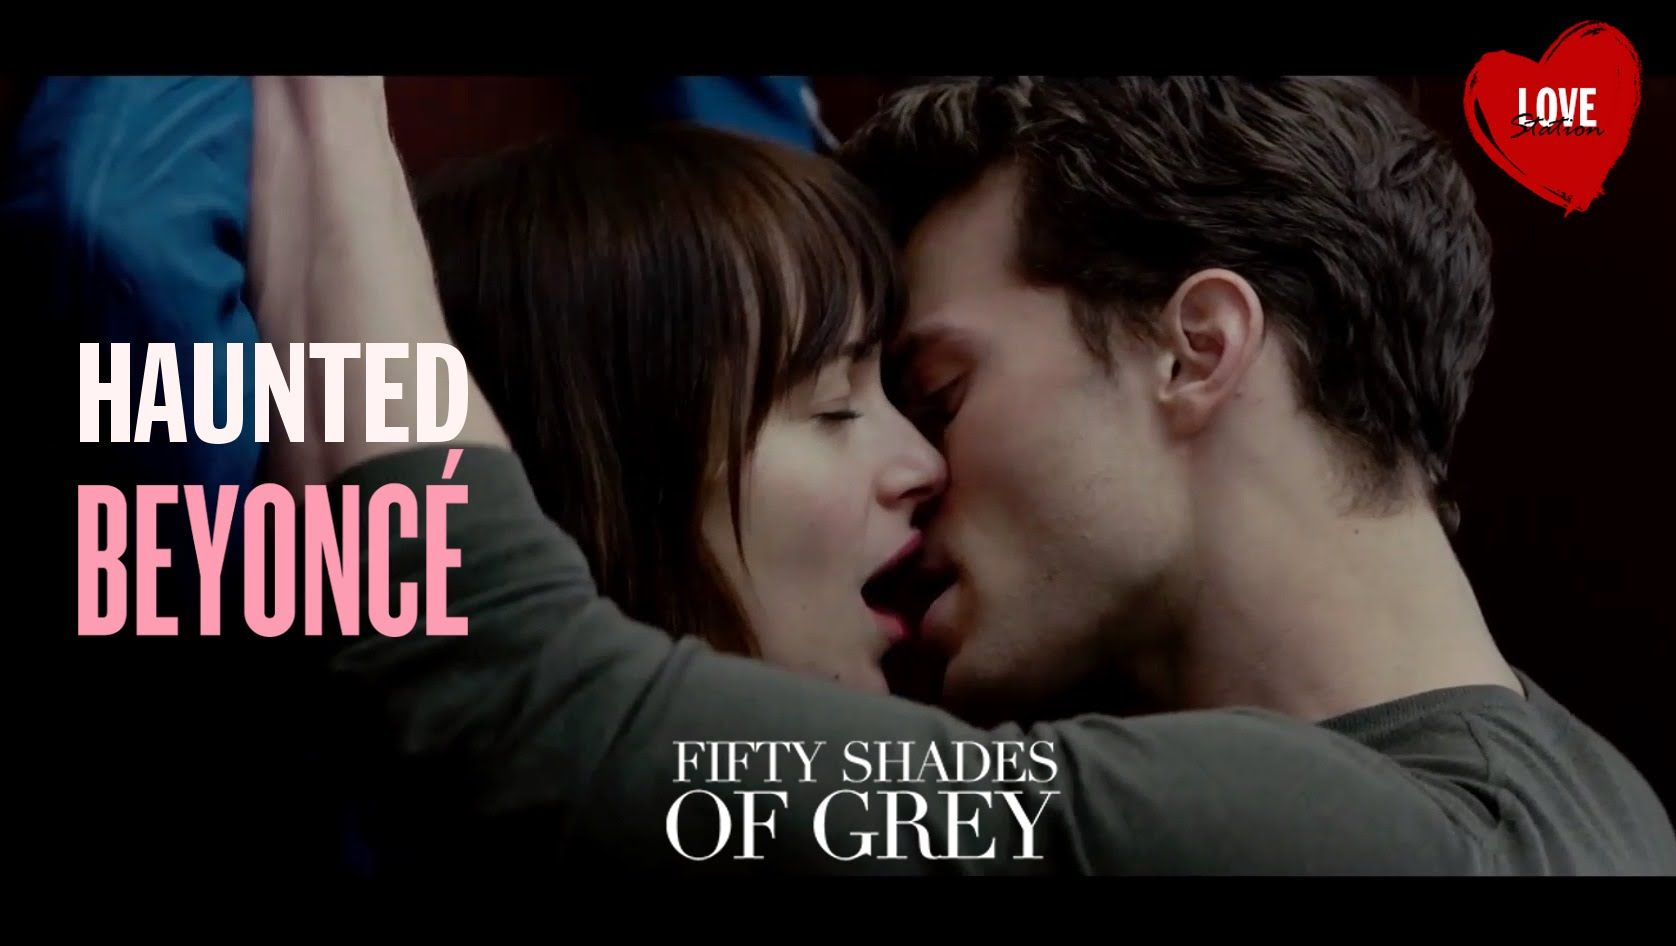 Beyonce Haunted Fifty Shades Of Grey Soundtrack Video Musica